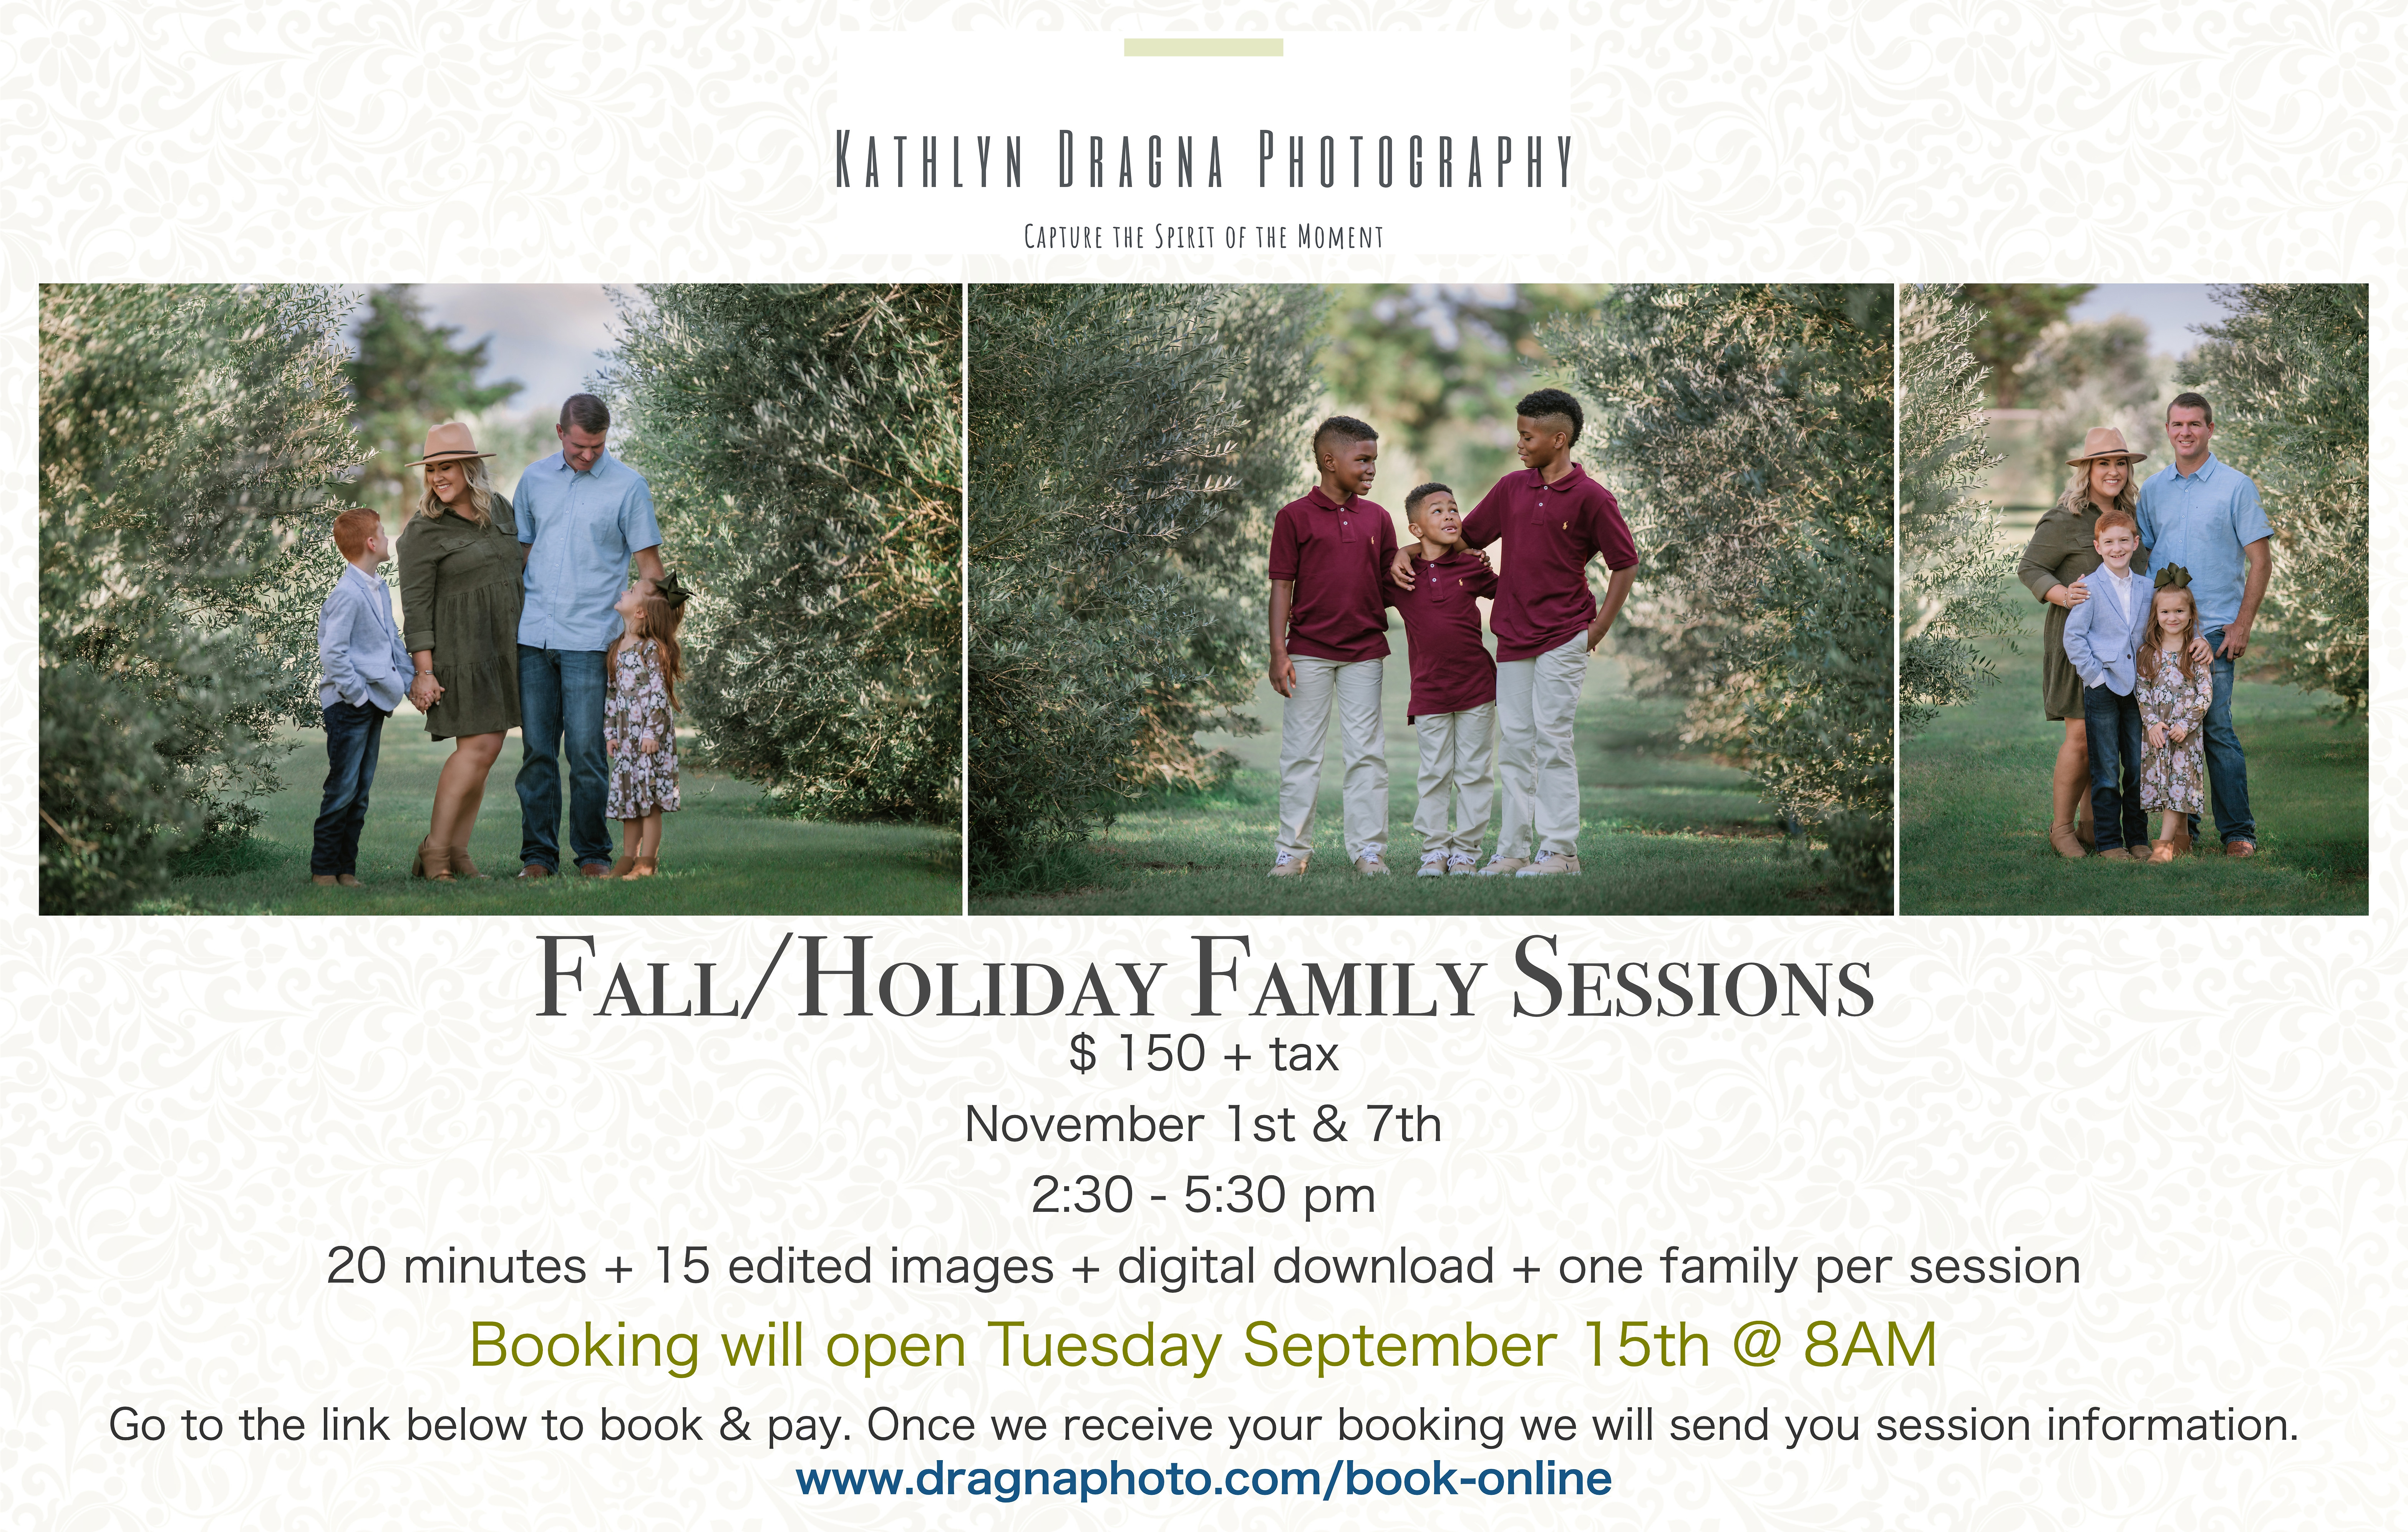 Fall/Holiday Family Sessions